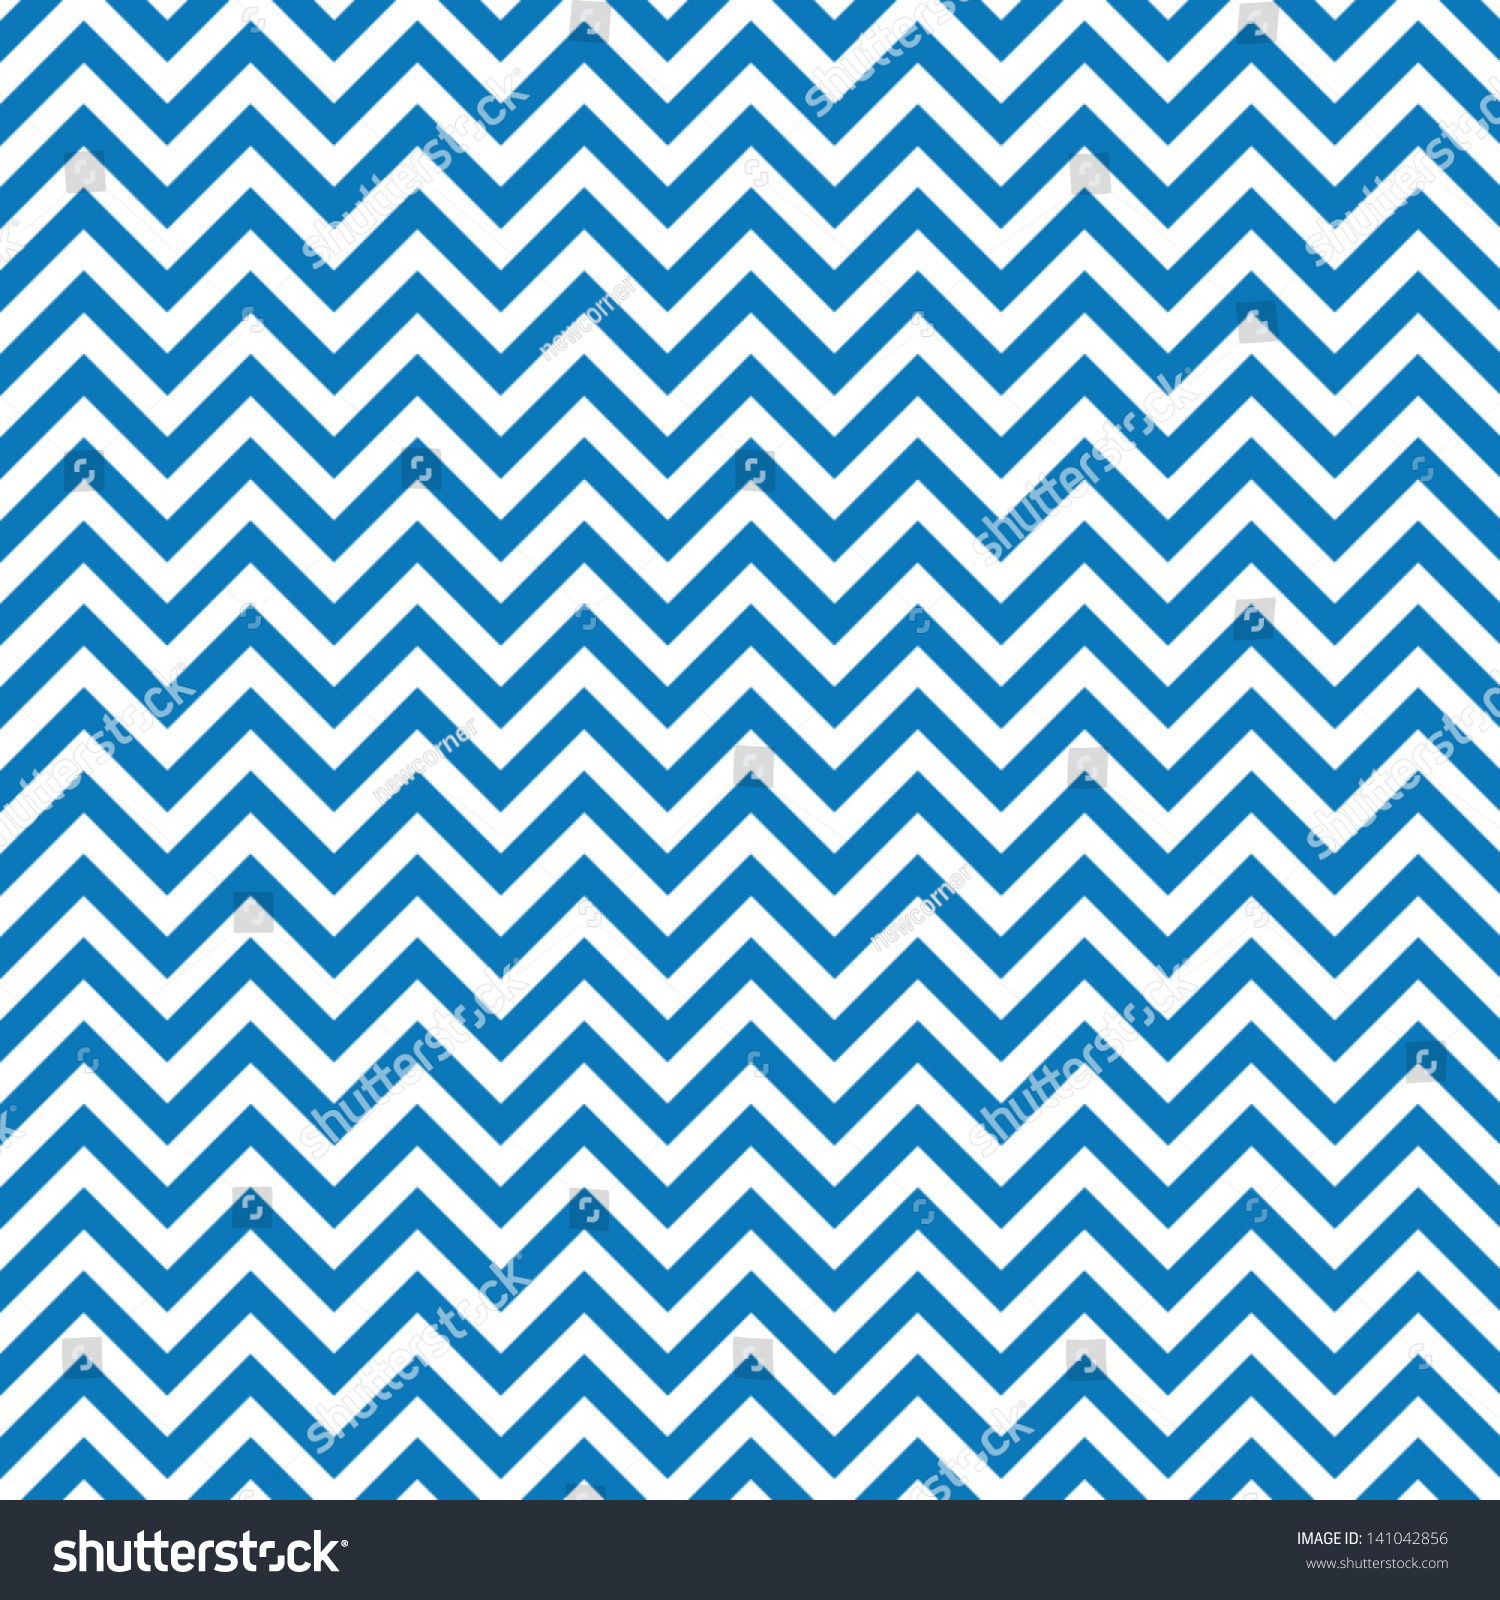 Blue Chevrons Seamless Pattern Background Retro Stock ...